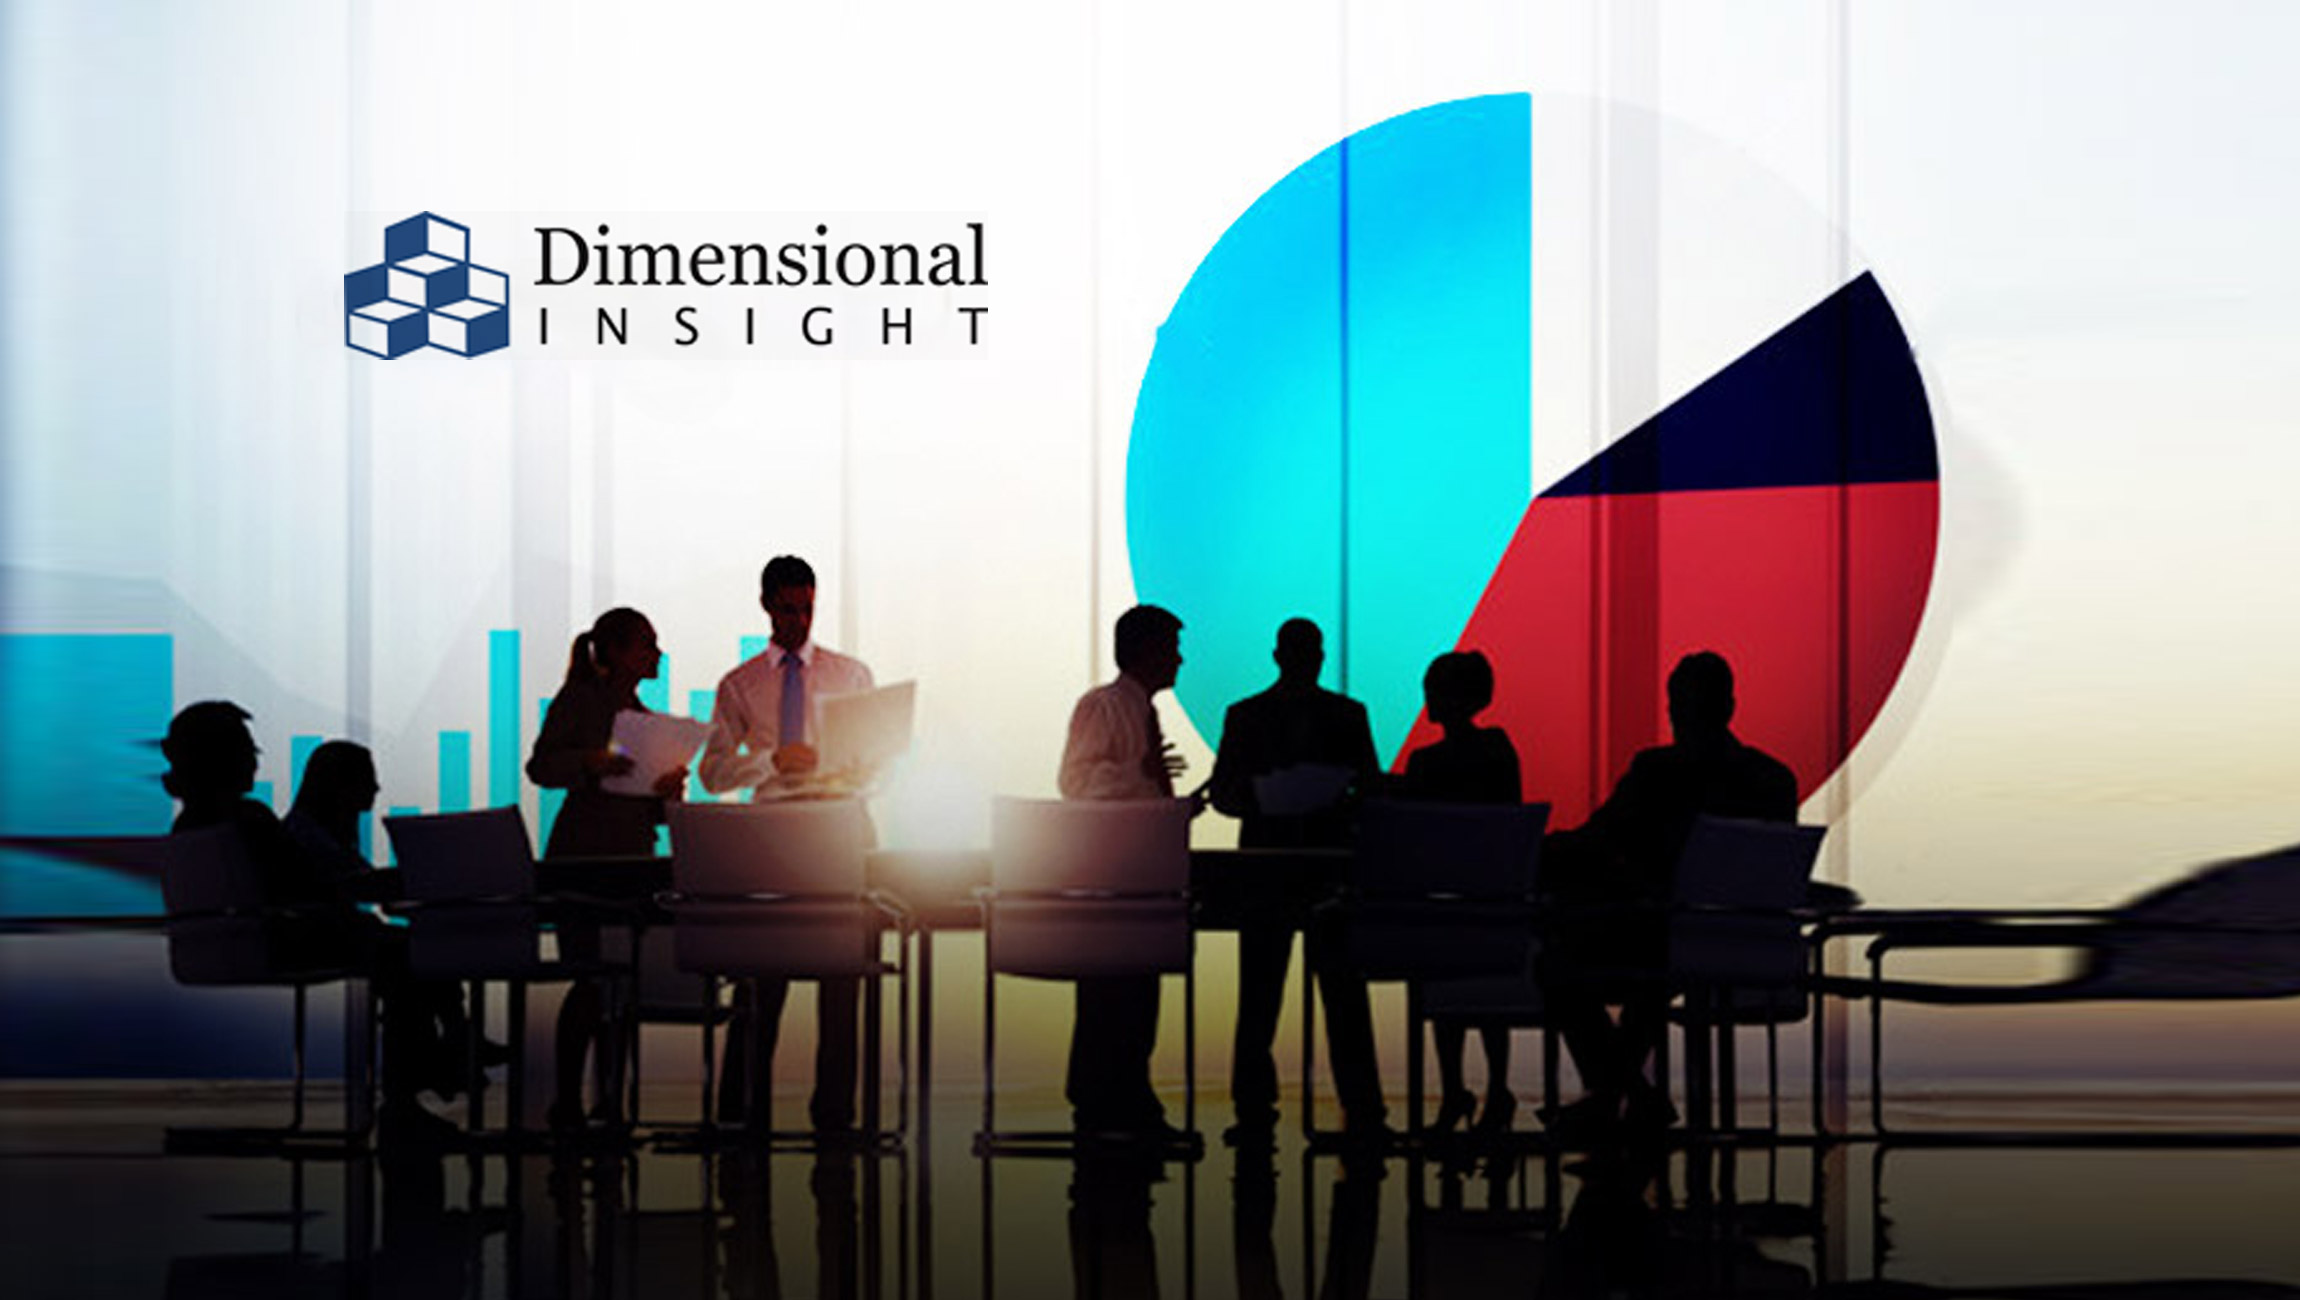 Dimensional Insight is Now Part of the Gartner Peer Insights Customer First Program for Analytics and Business Intelligence Platforms